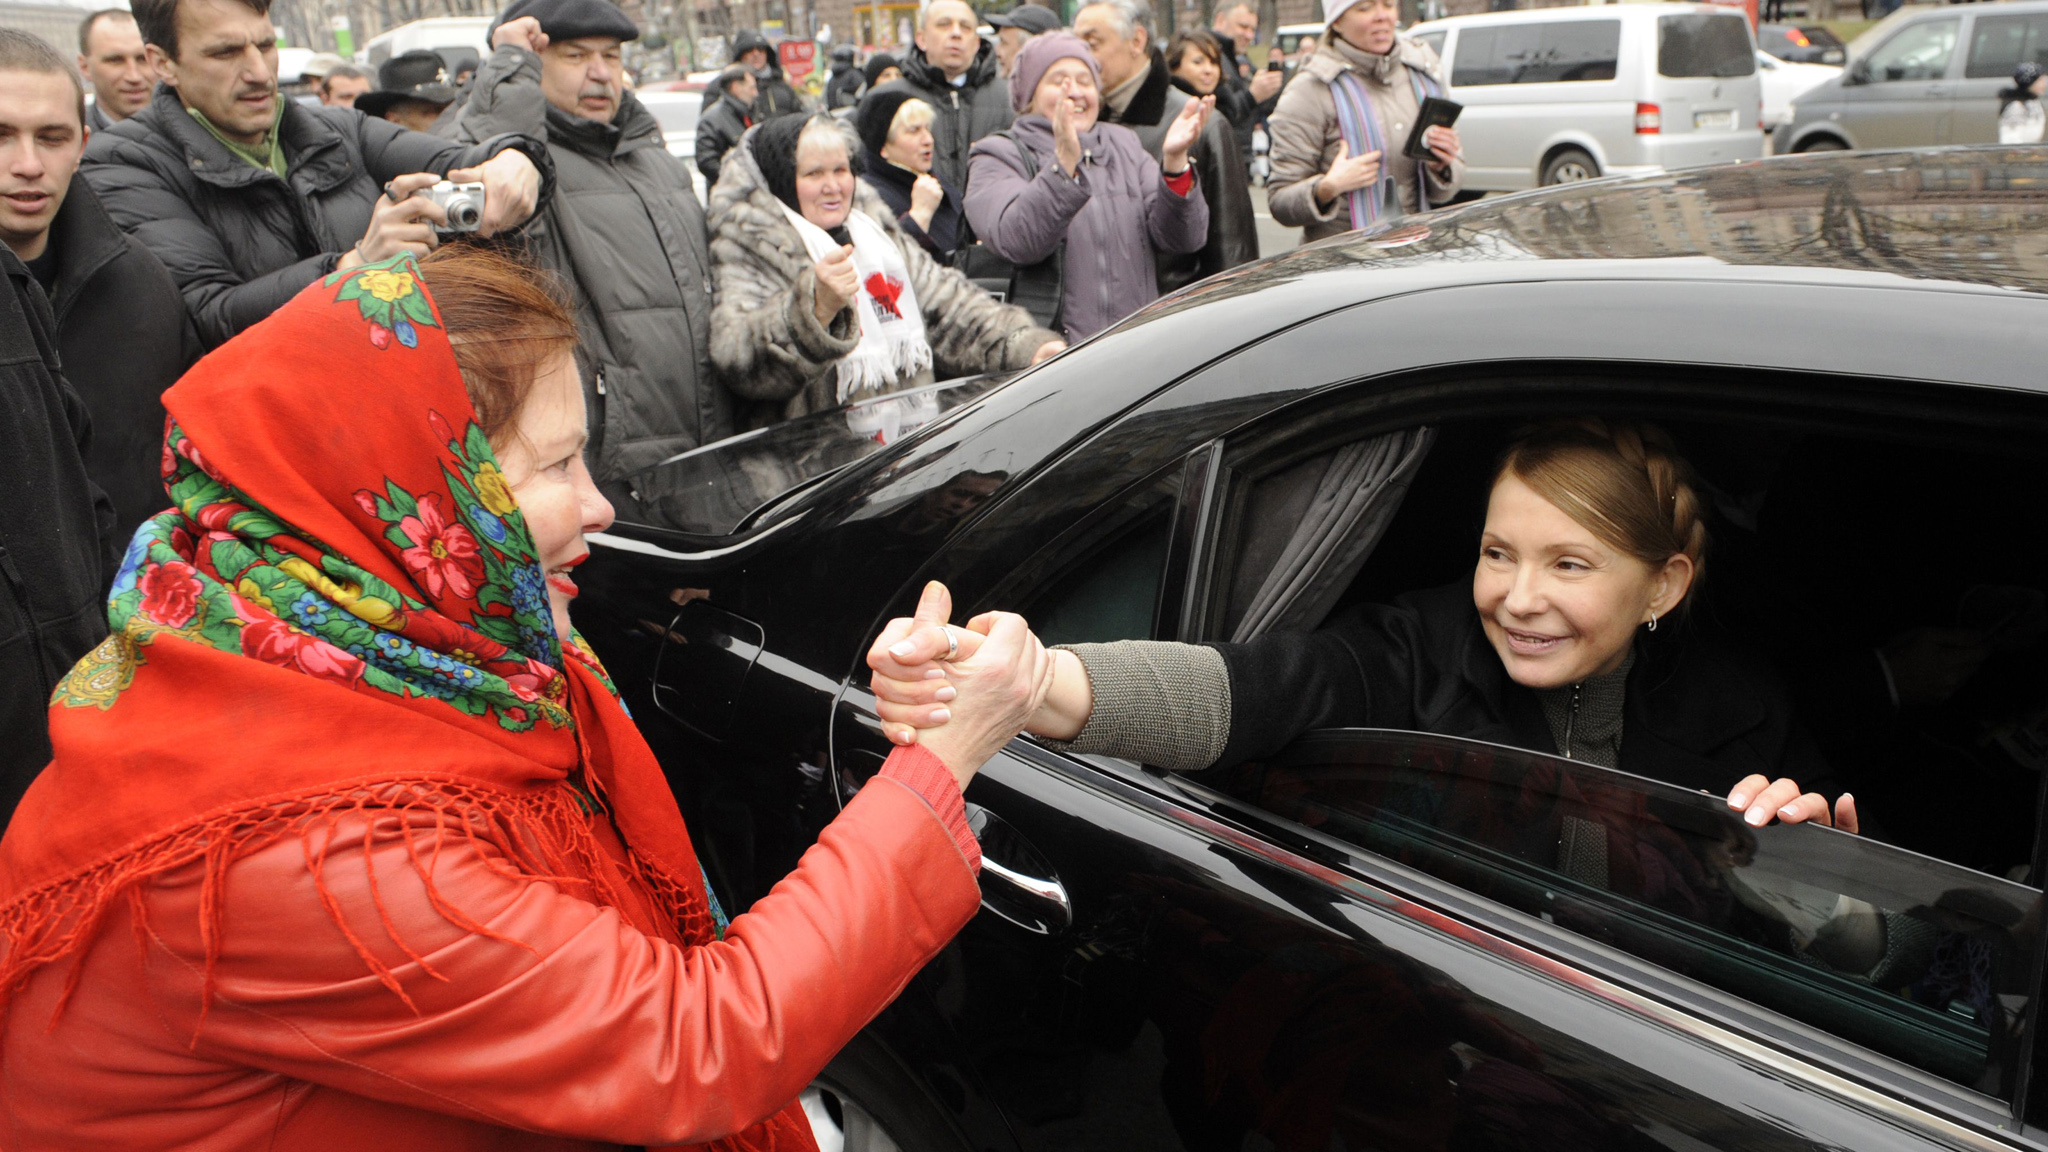 Ukrainian opposition leader Yulia Tymoshenko shakes hands with a woman as she arrives to visit the tent camp of her supporters in the center of Kiev .